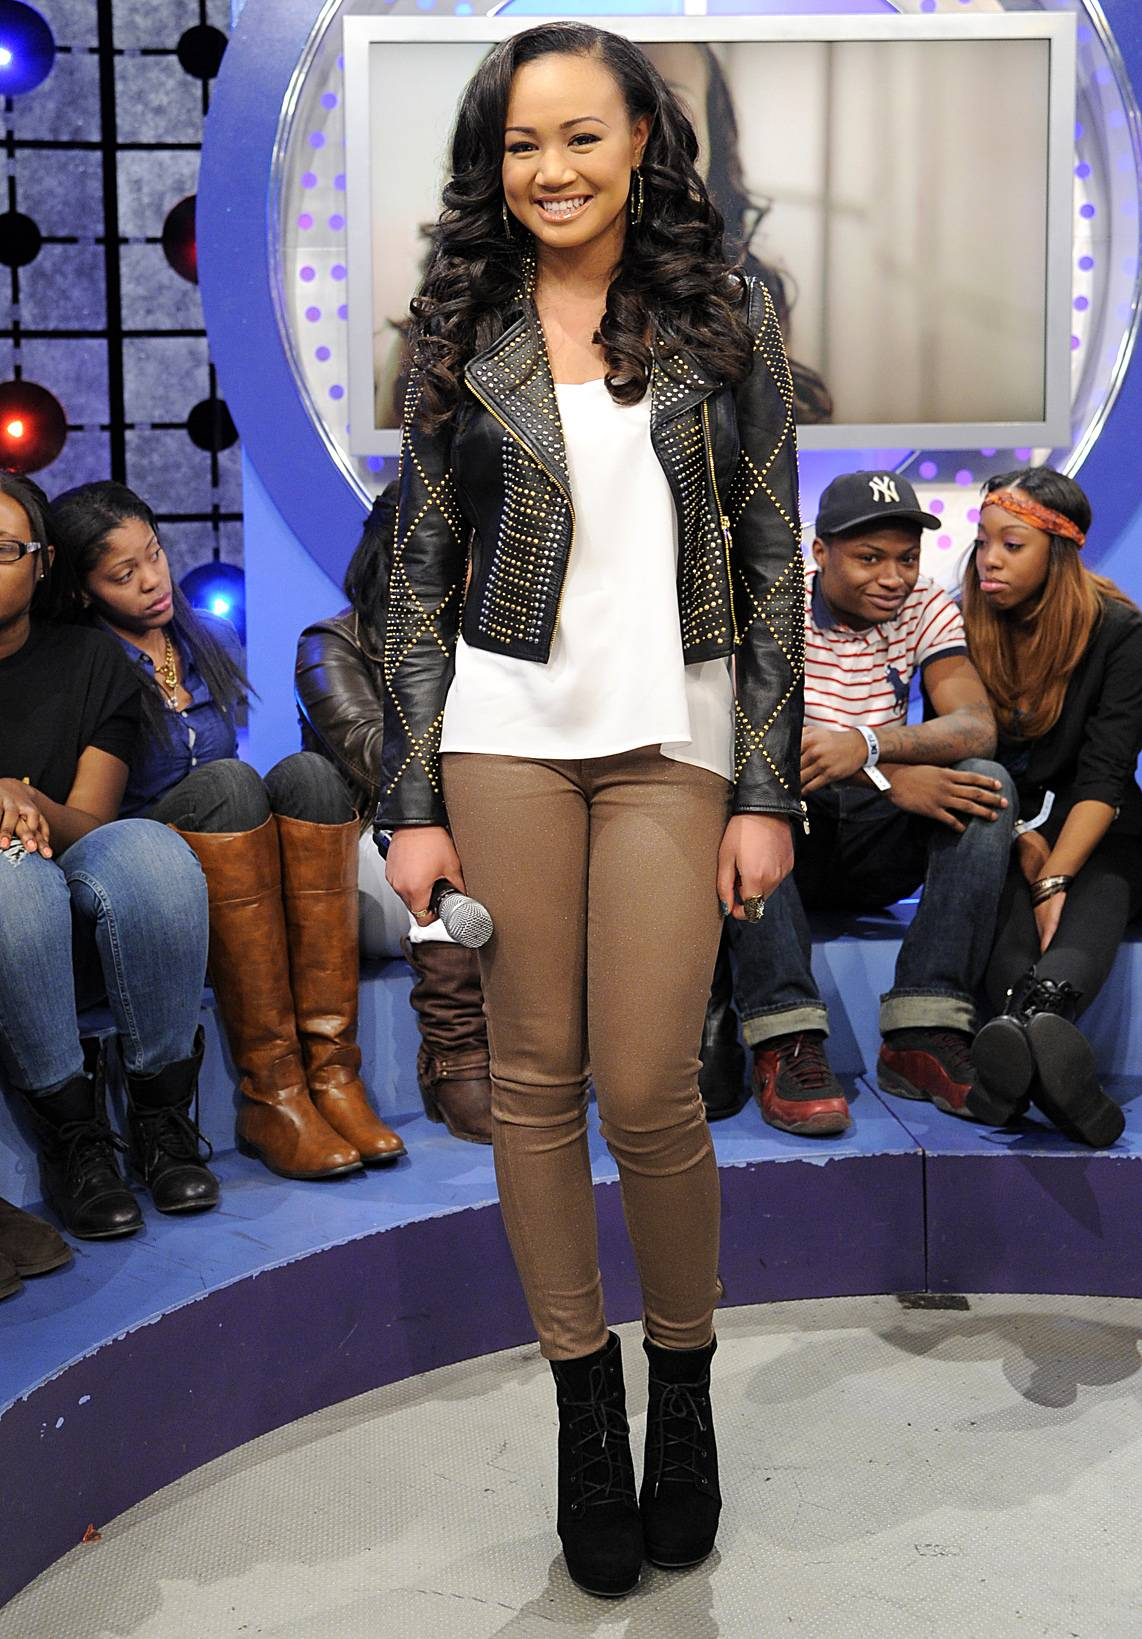 I Like This - Cymphonique Miller at 106 & Park, January 05, 2012. (Photo: John Ricard/BET)